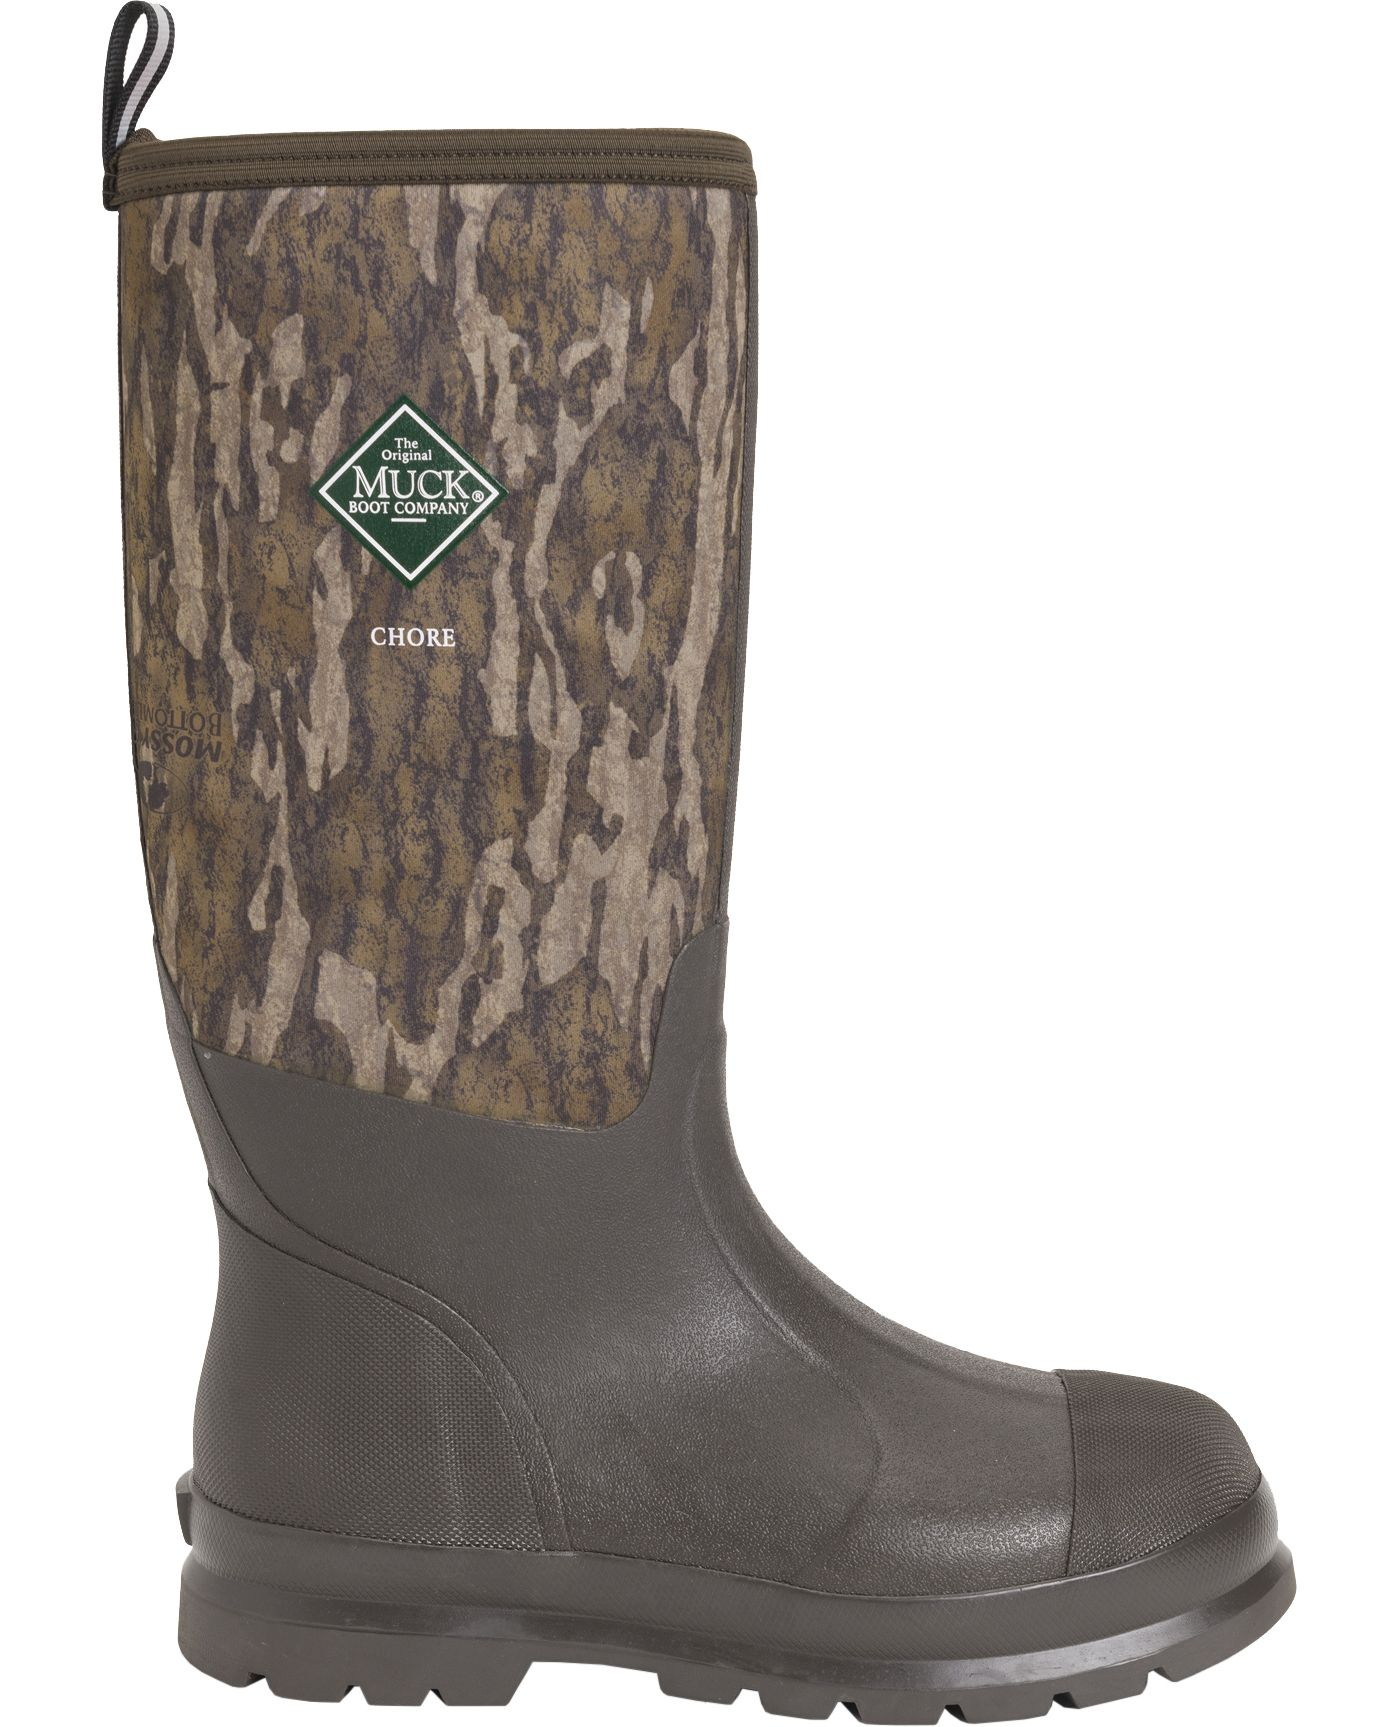 Muck Boots Men's Chore Hi Classic Mossy Oak Bottomland Rubber Hunting Boots